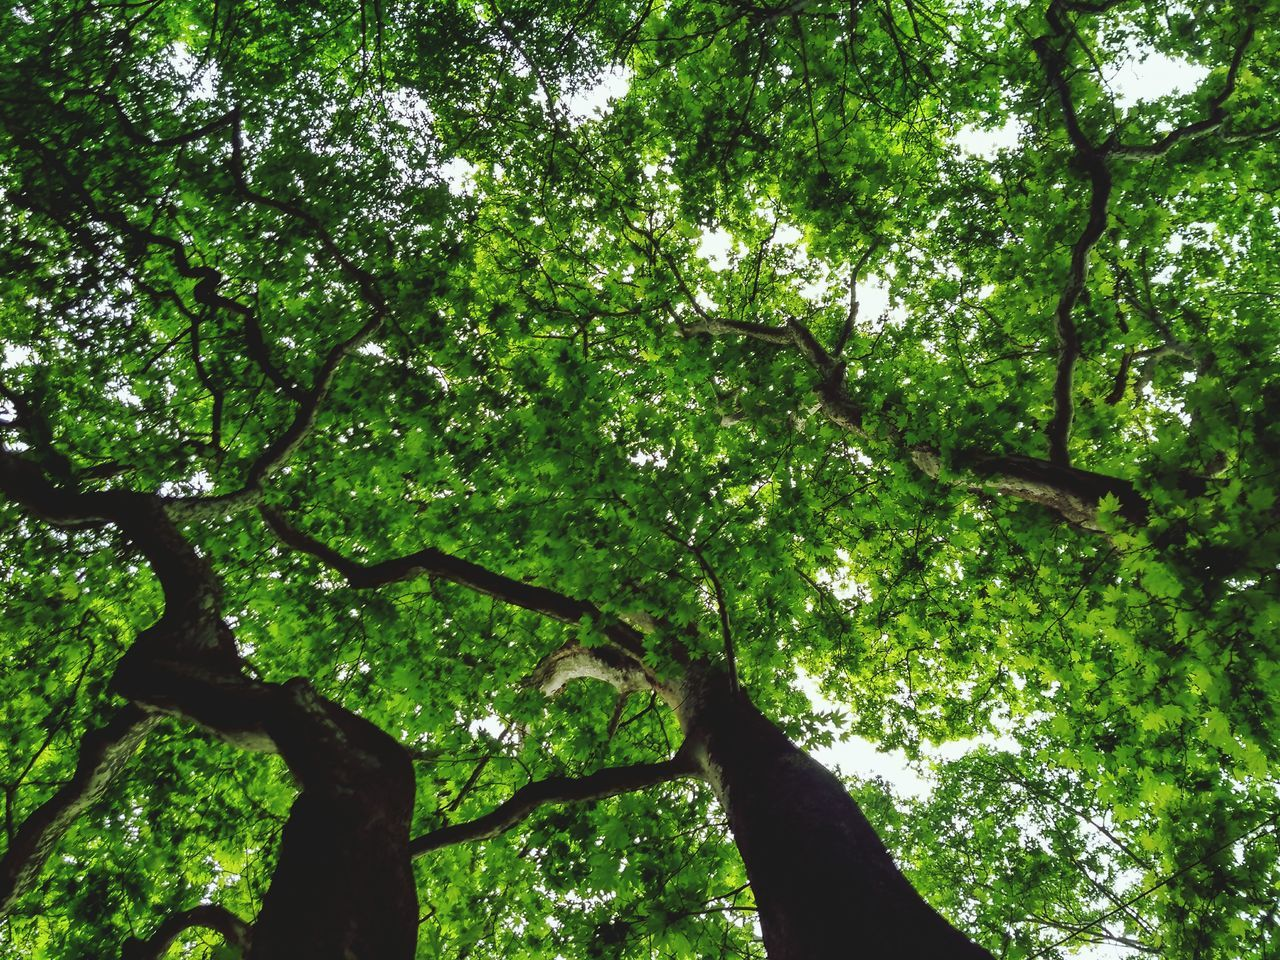 tree, nature, forest, growth, branch, low angle view, no people, beauty in nature, outdoors, day, foliage